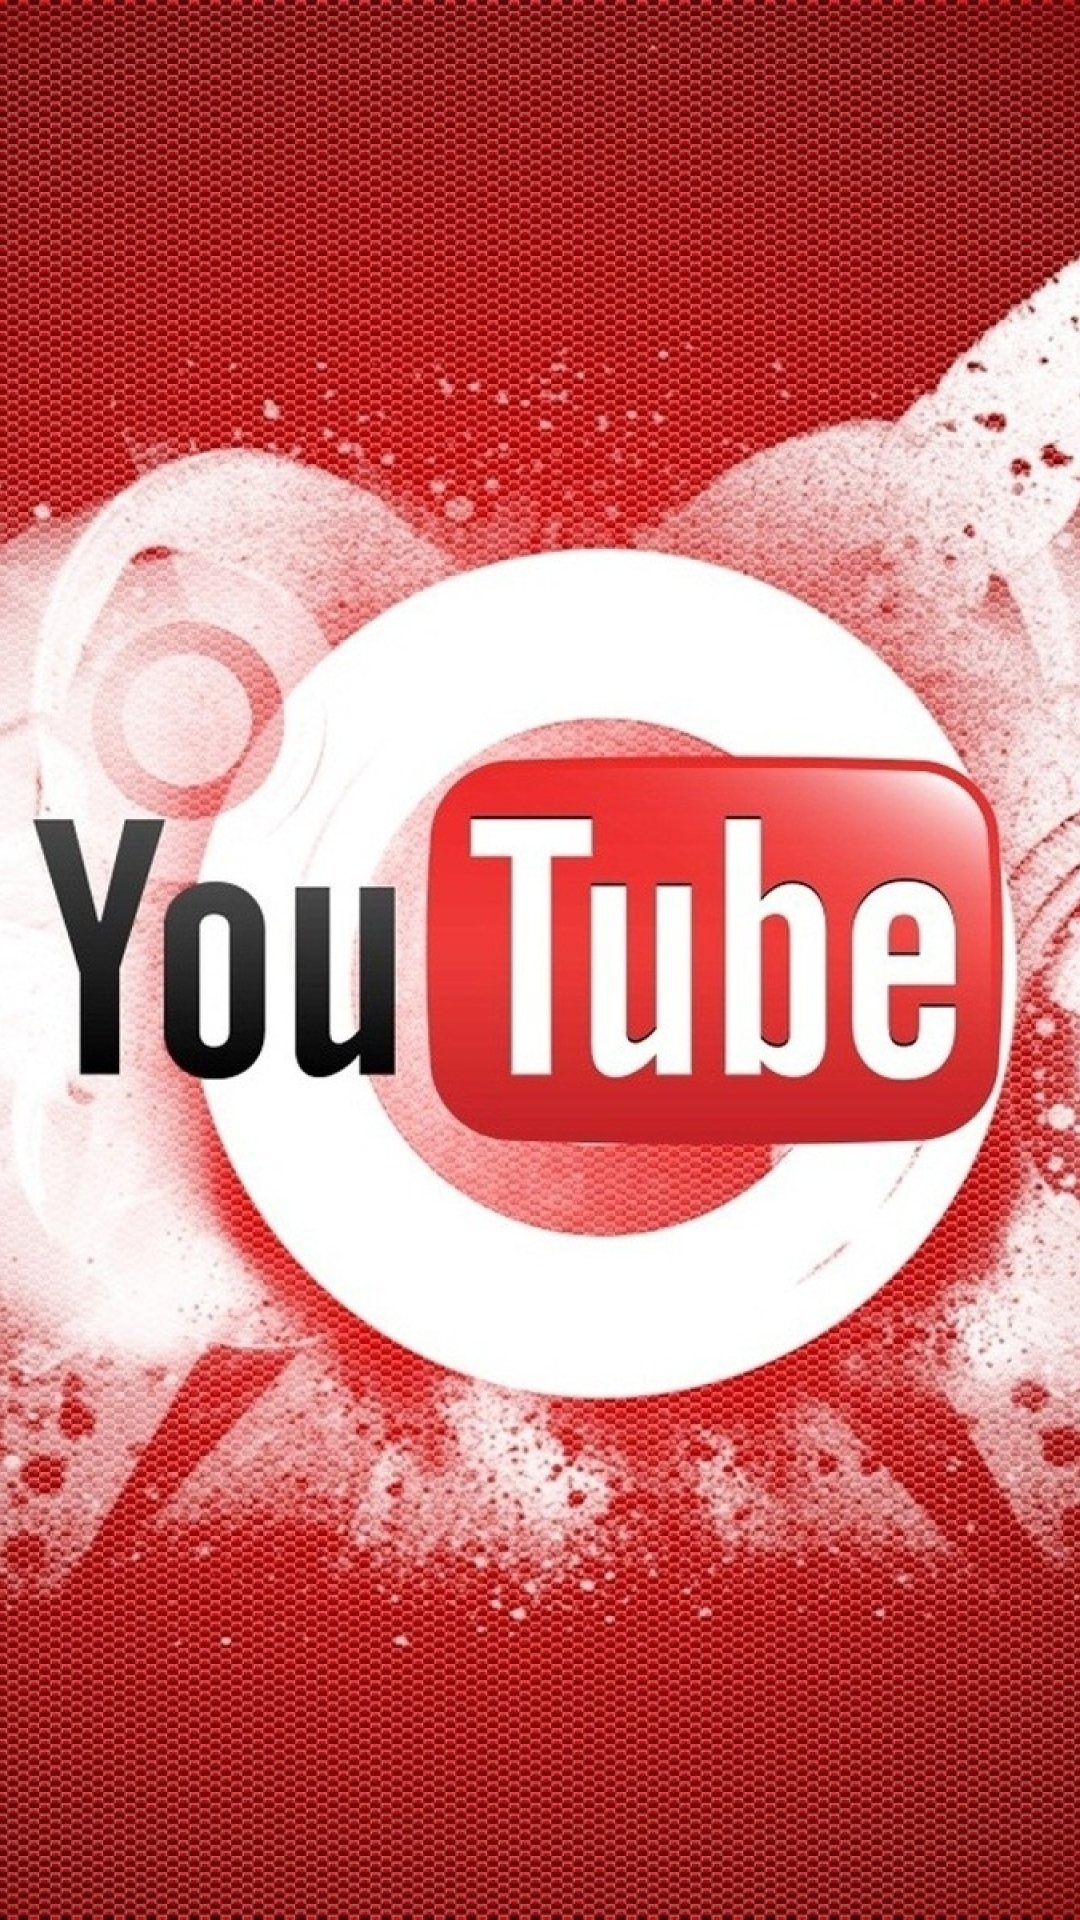 Download youtube video hosting logo 720x1280 resolution full hd samsung galaxy s series sony xperia z series htc one lenovo vibe 1080x1920 ccuart Choice Image